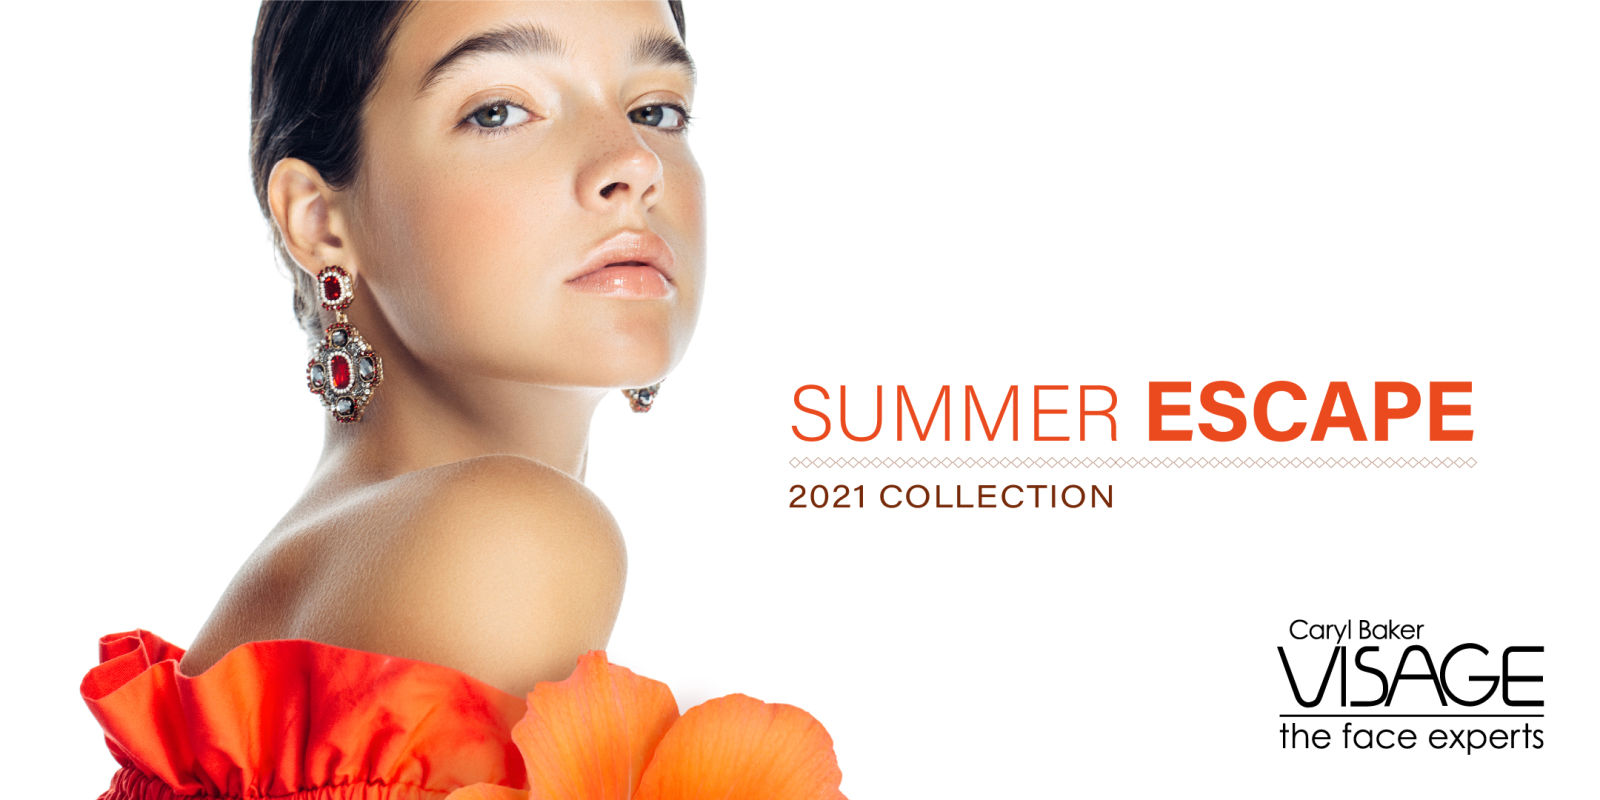 [Image] [offer] Summer Escape 2021Collection